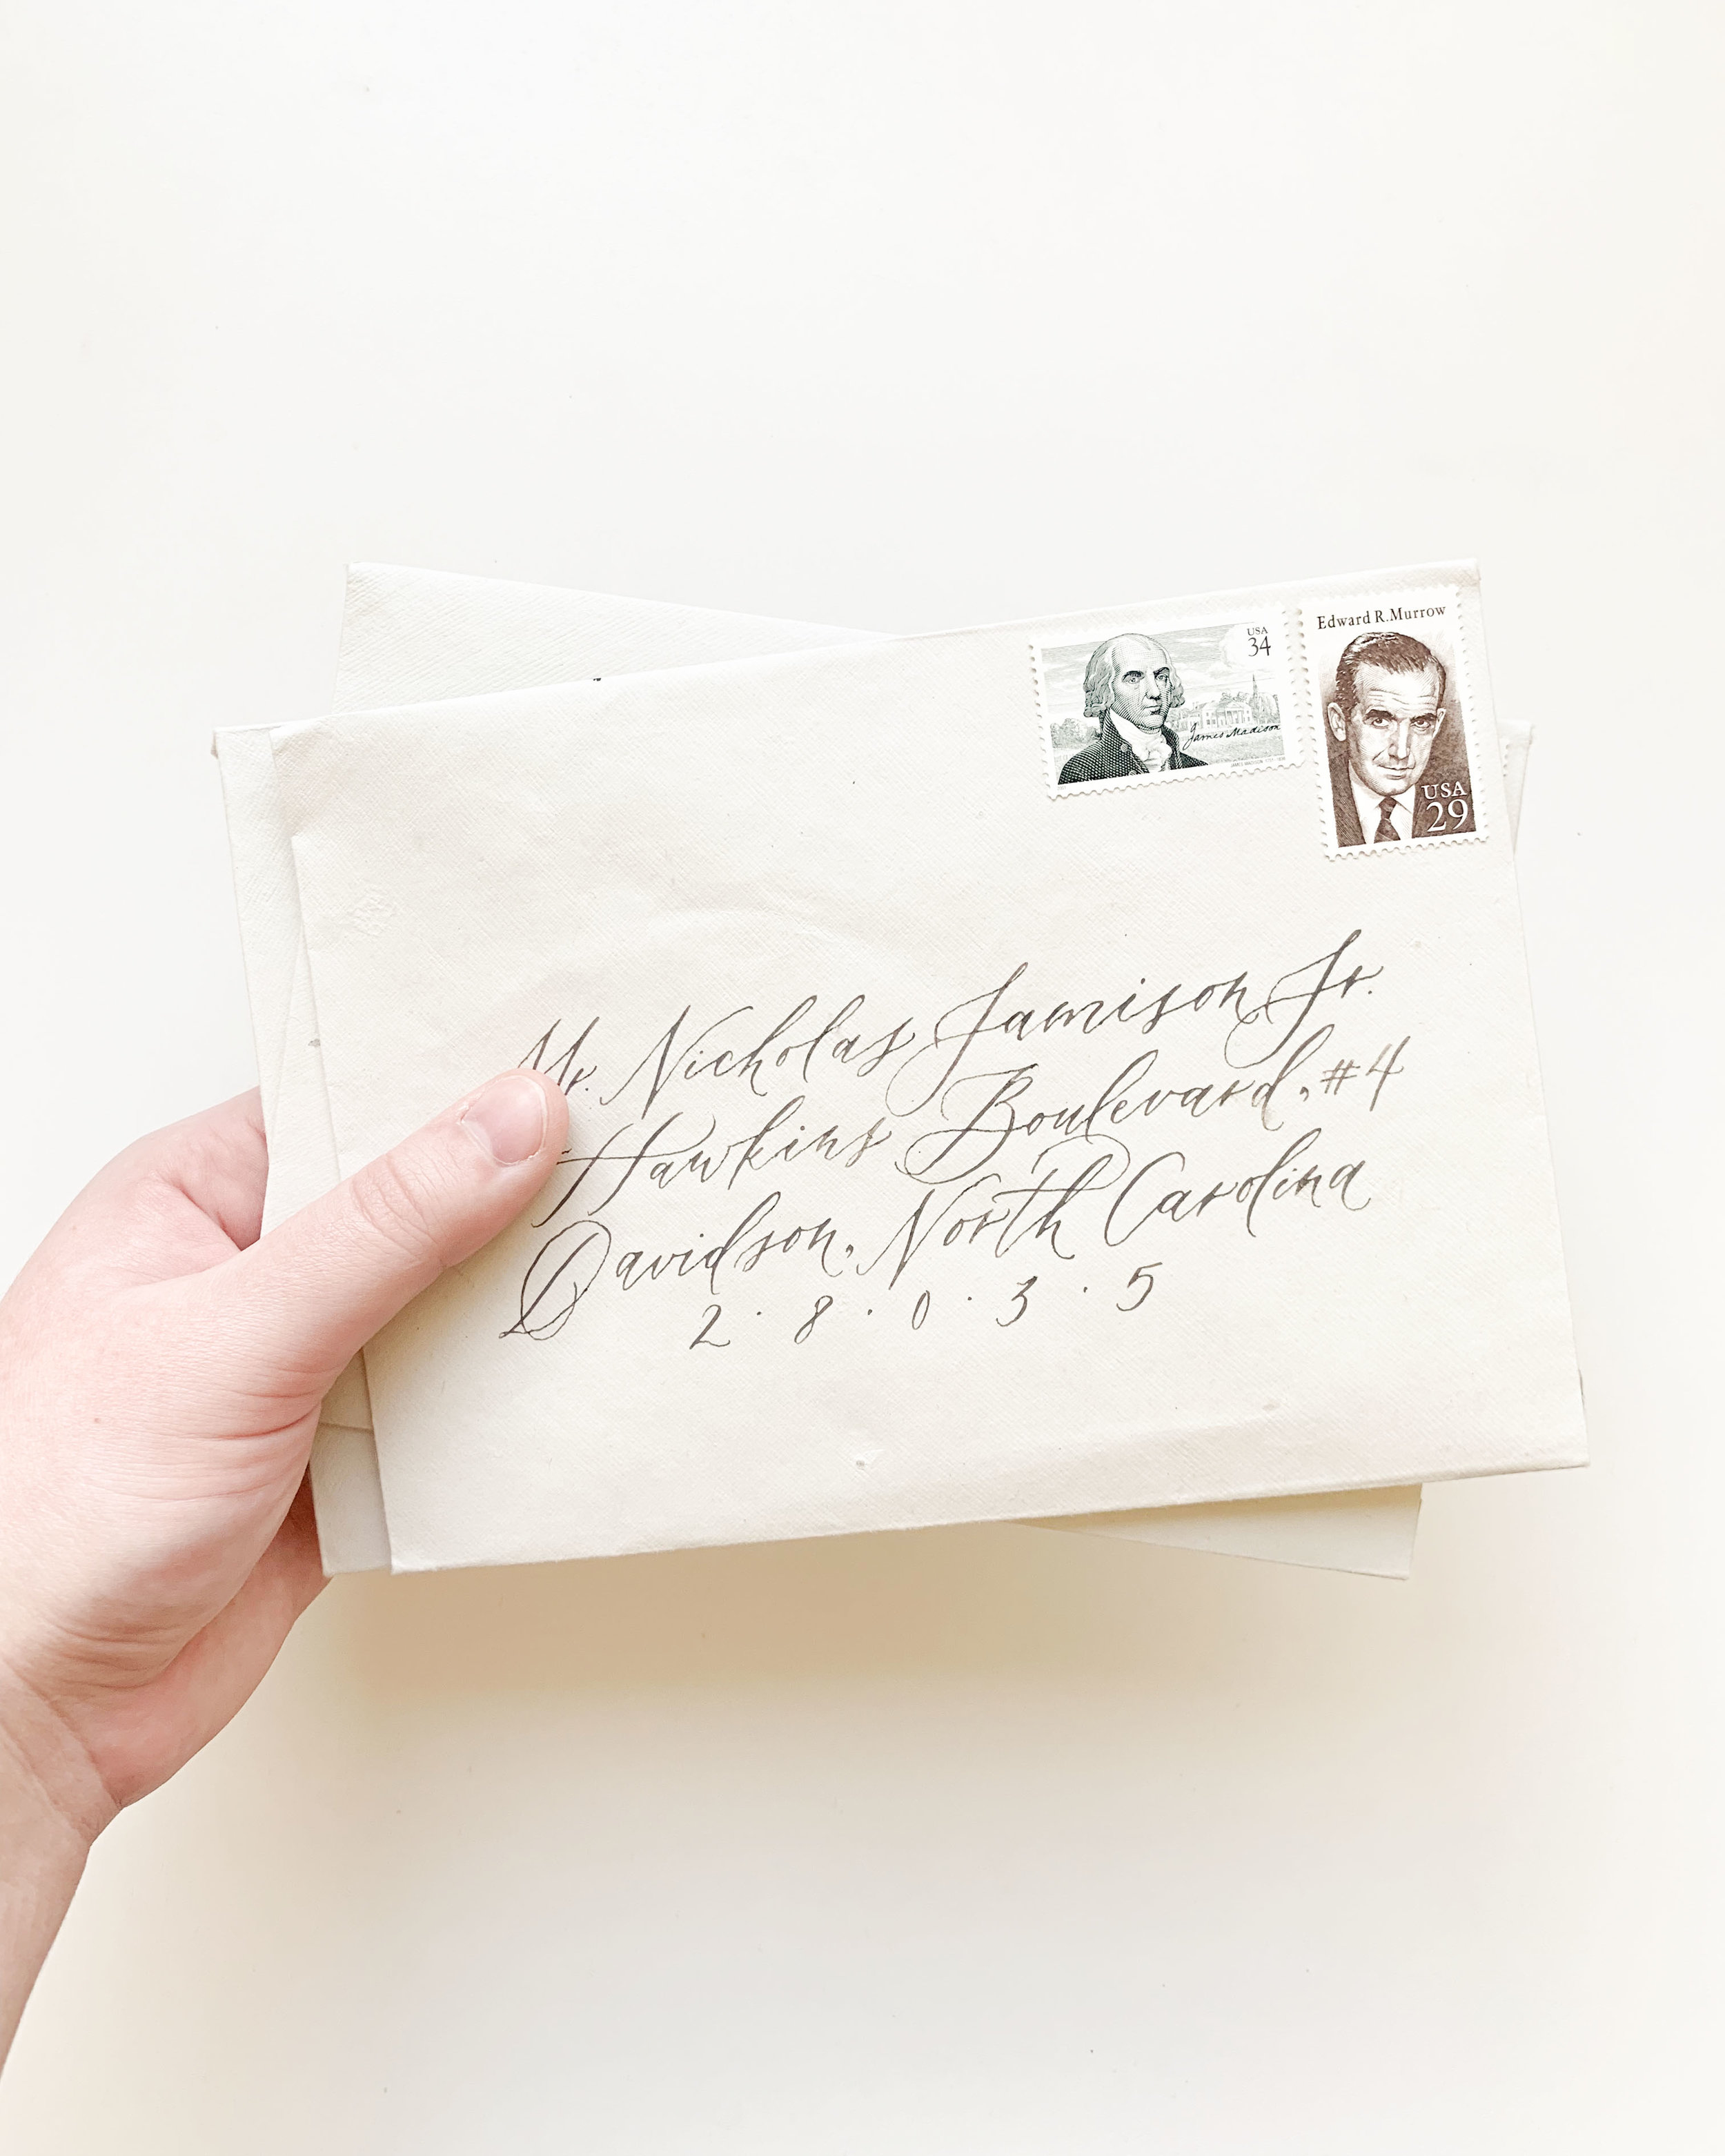 Vintage postage, calligraphy addressing, and handmade paper envelopes for custom fine art wedding invitations.